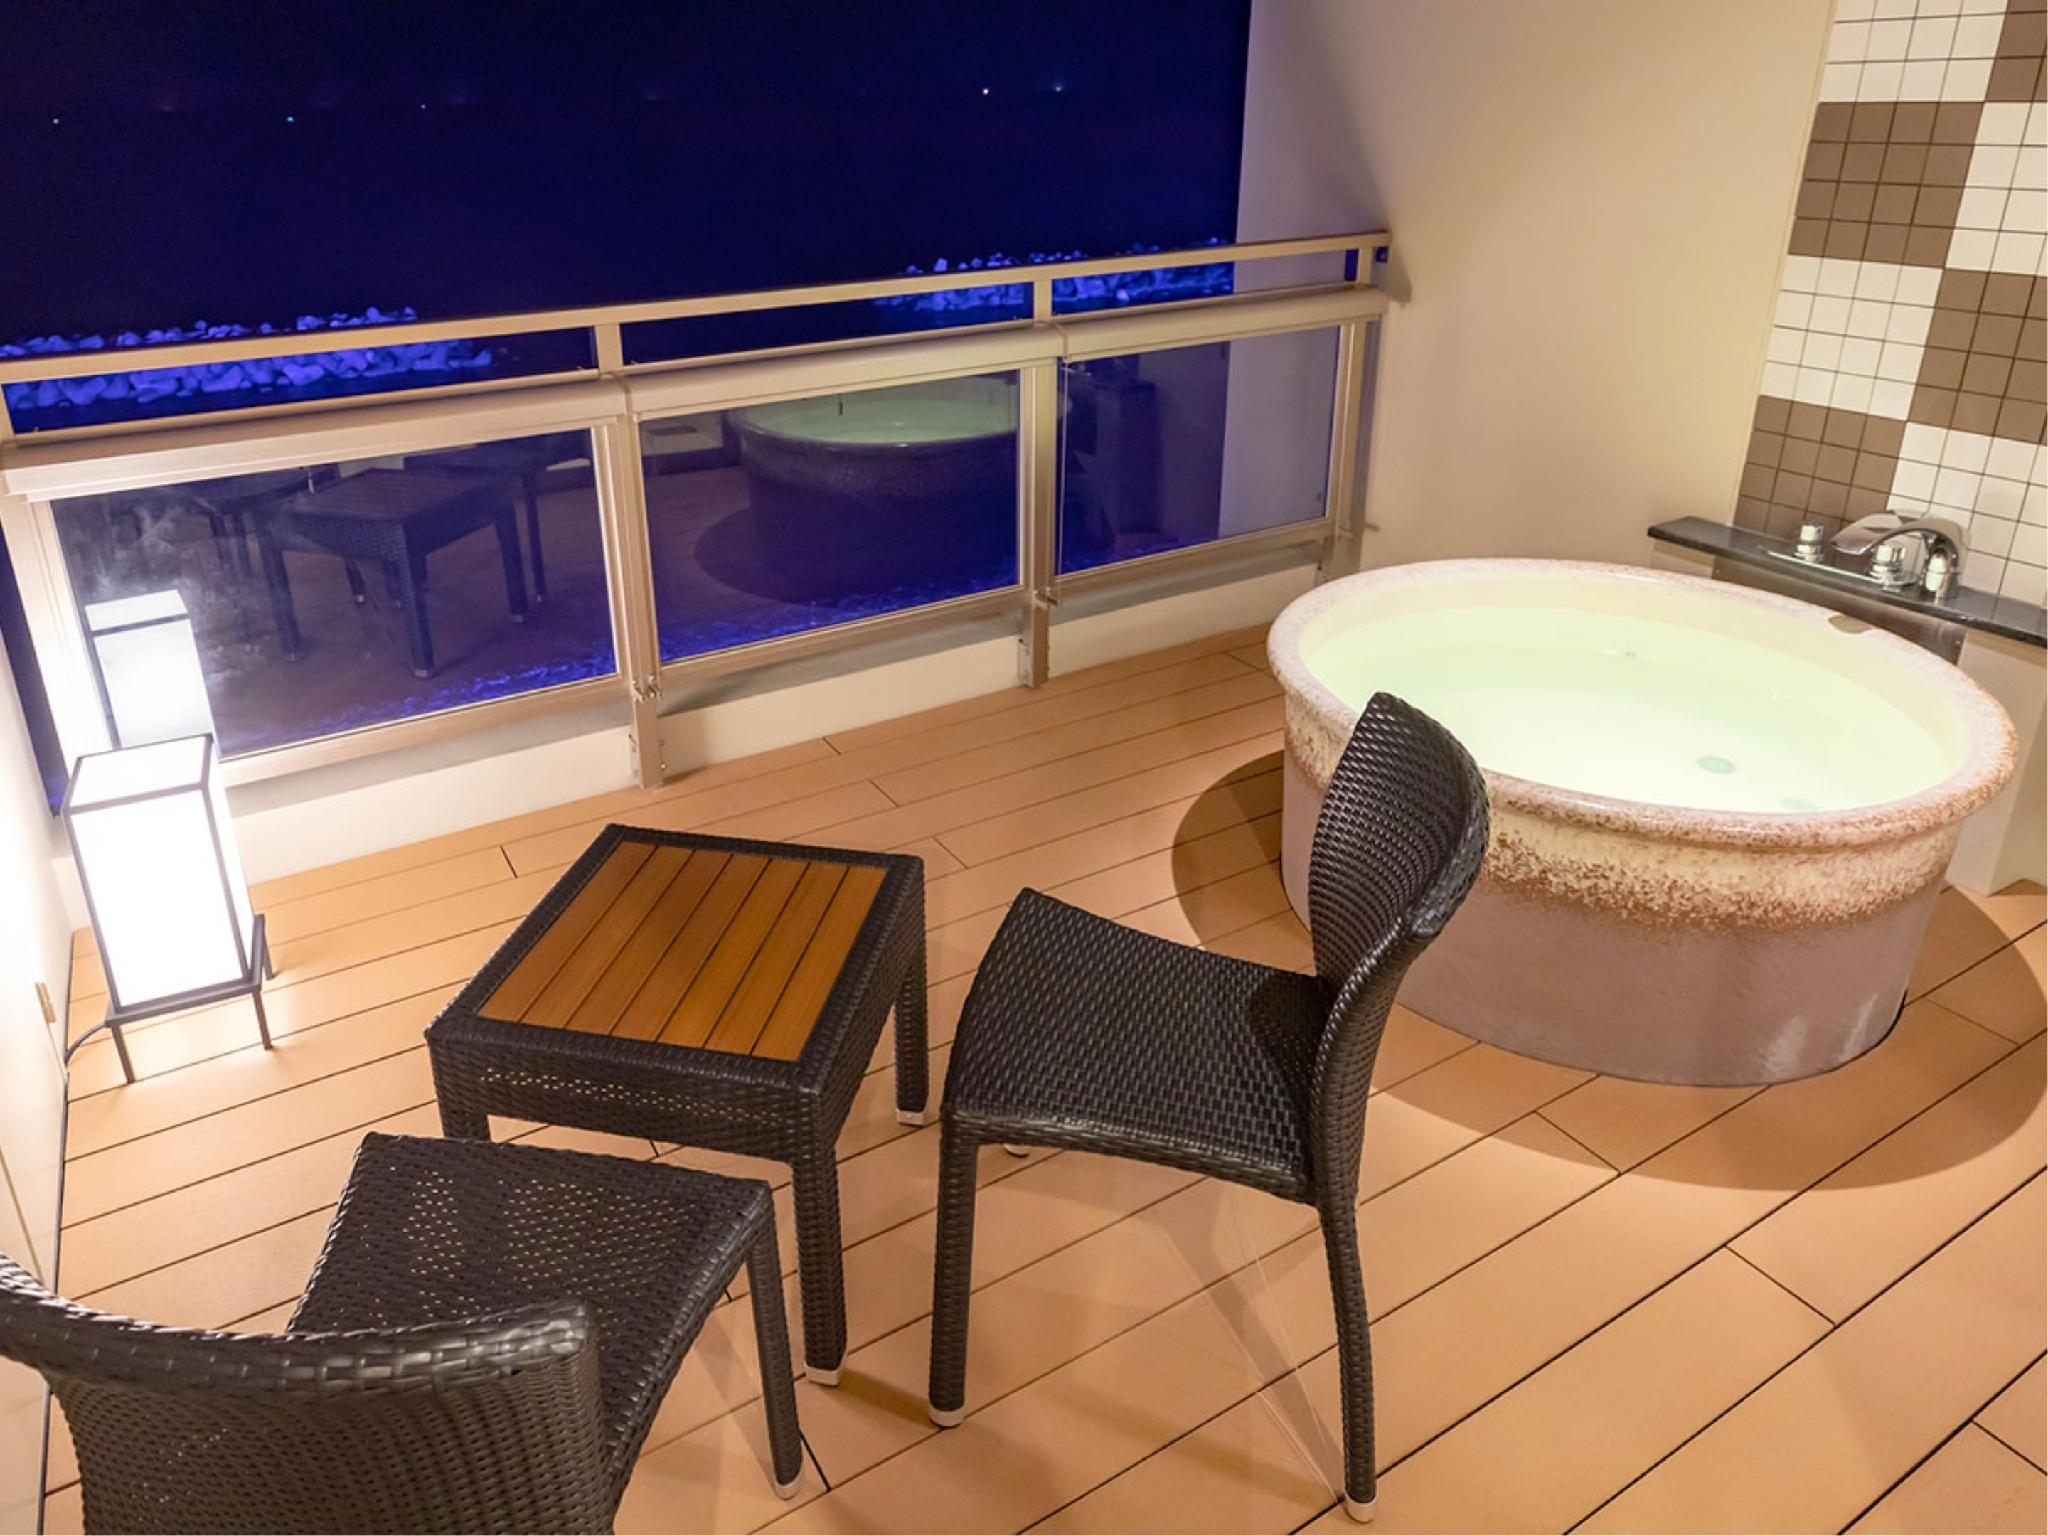 디럭스 다다미 침대 객실(노천온천탕) (Deluxe Japanese/Western-style Room with Open-air Hot Spring Bath)